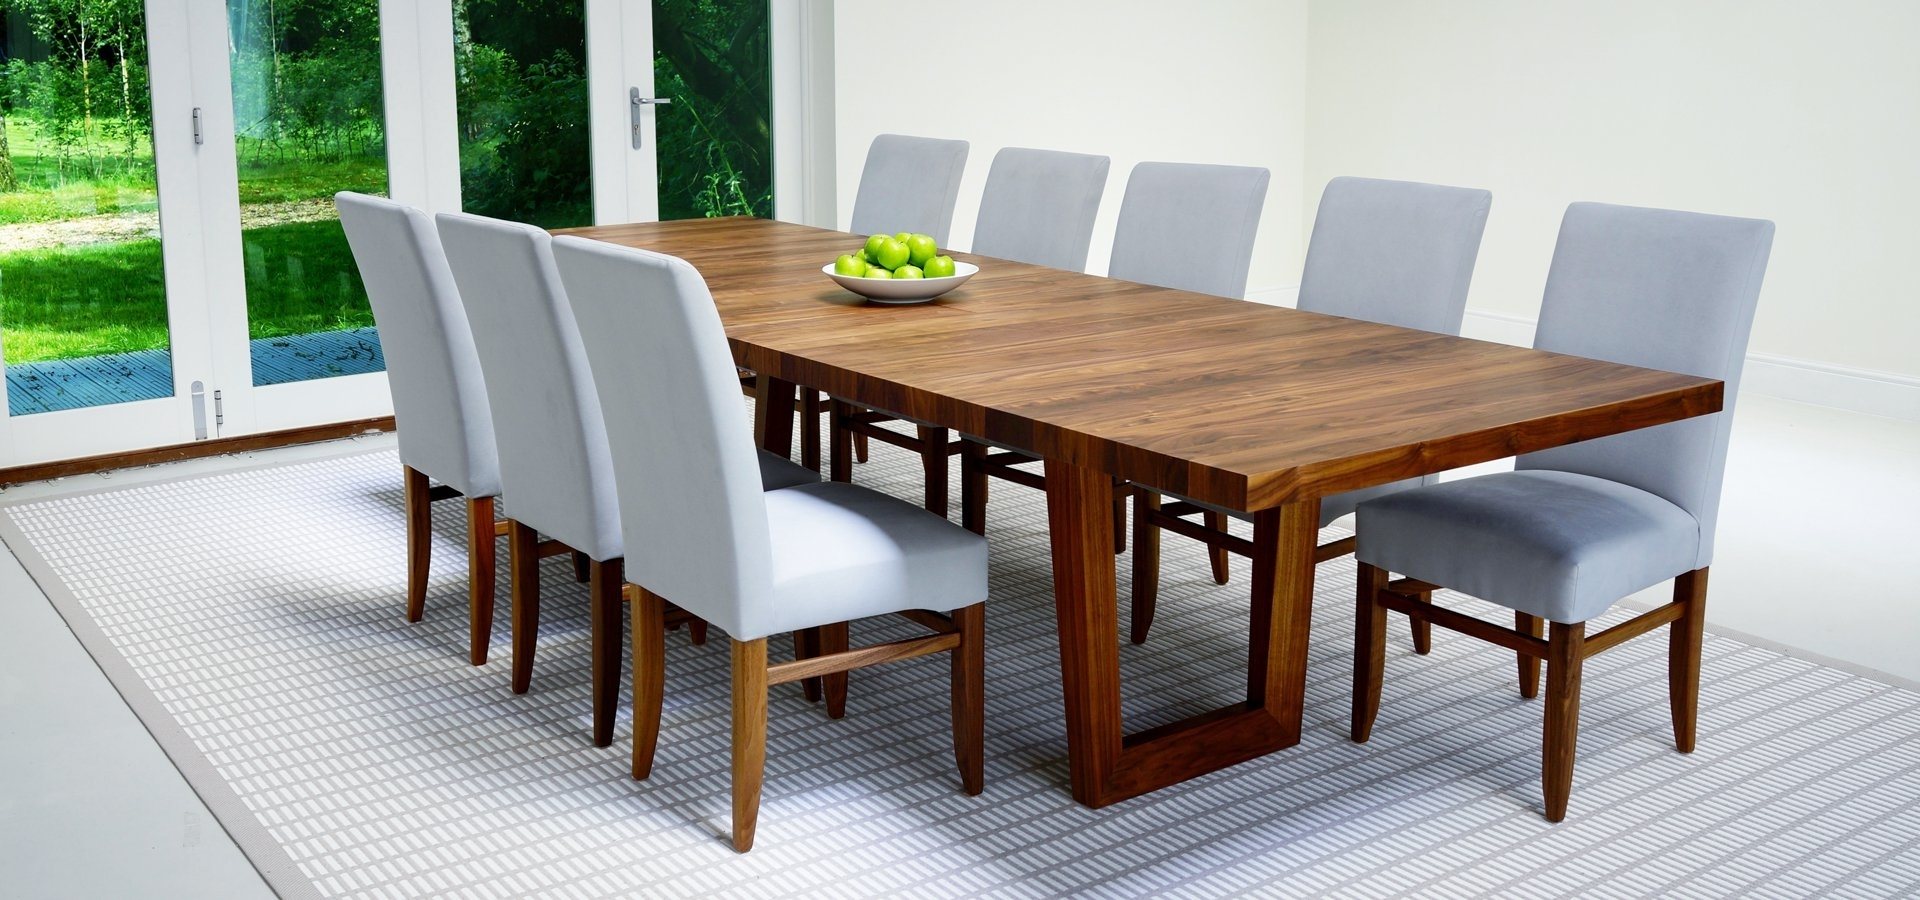 Extending Dining Table Sets - Castrophotos intended for Most Popular Extending Dining Room Tables And Chairs